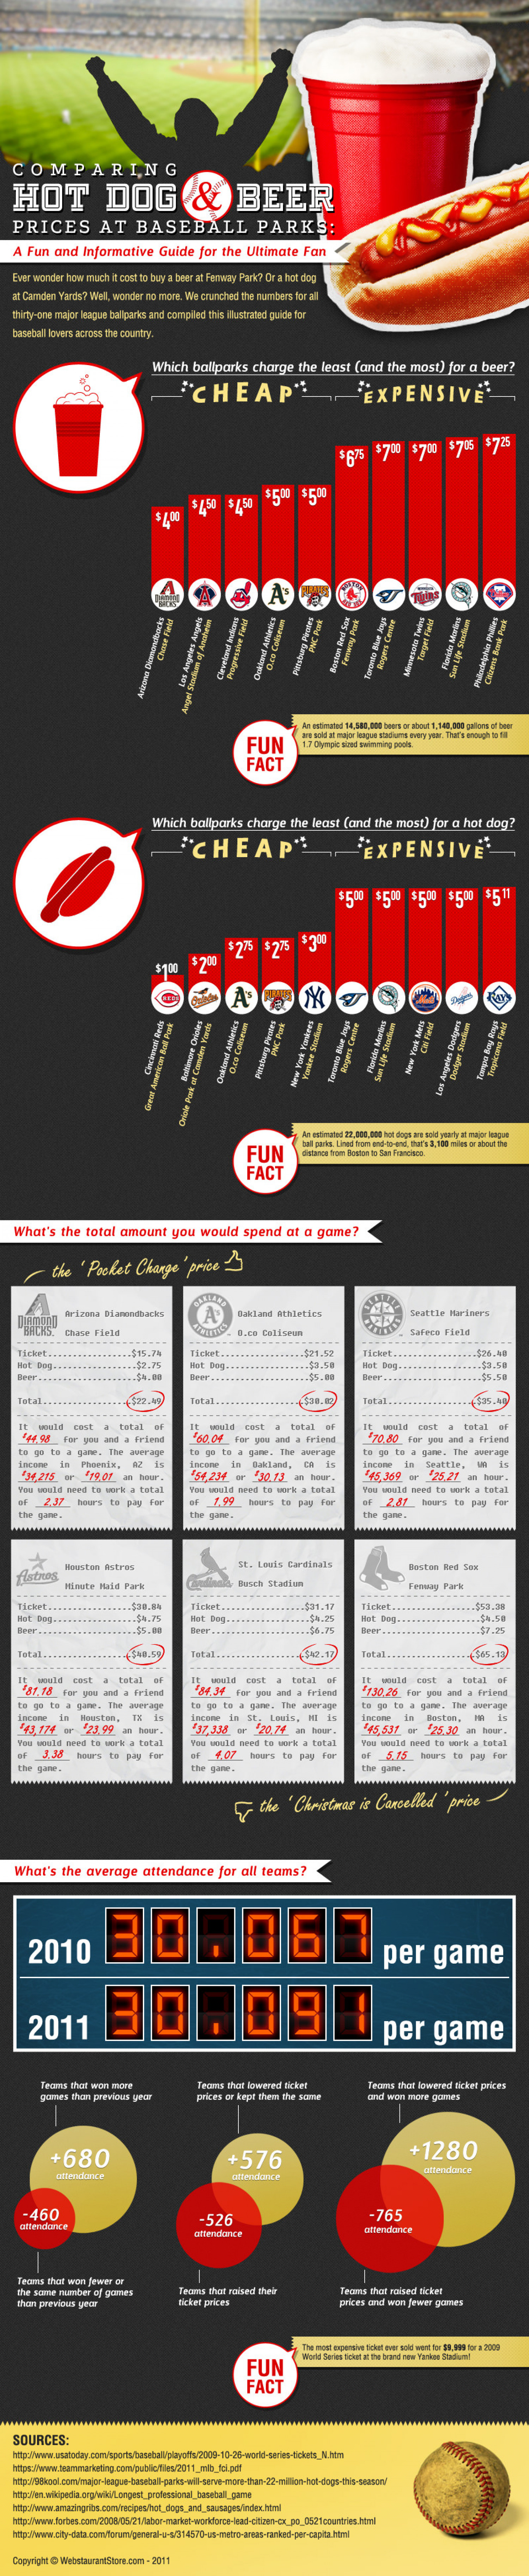 Comparing Hot Dog and Beer Prices at Baseball Parks  Infographic